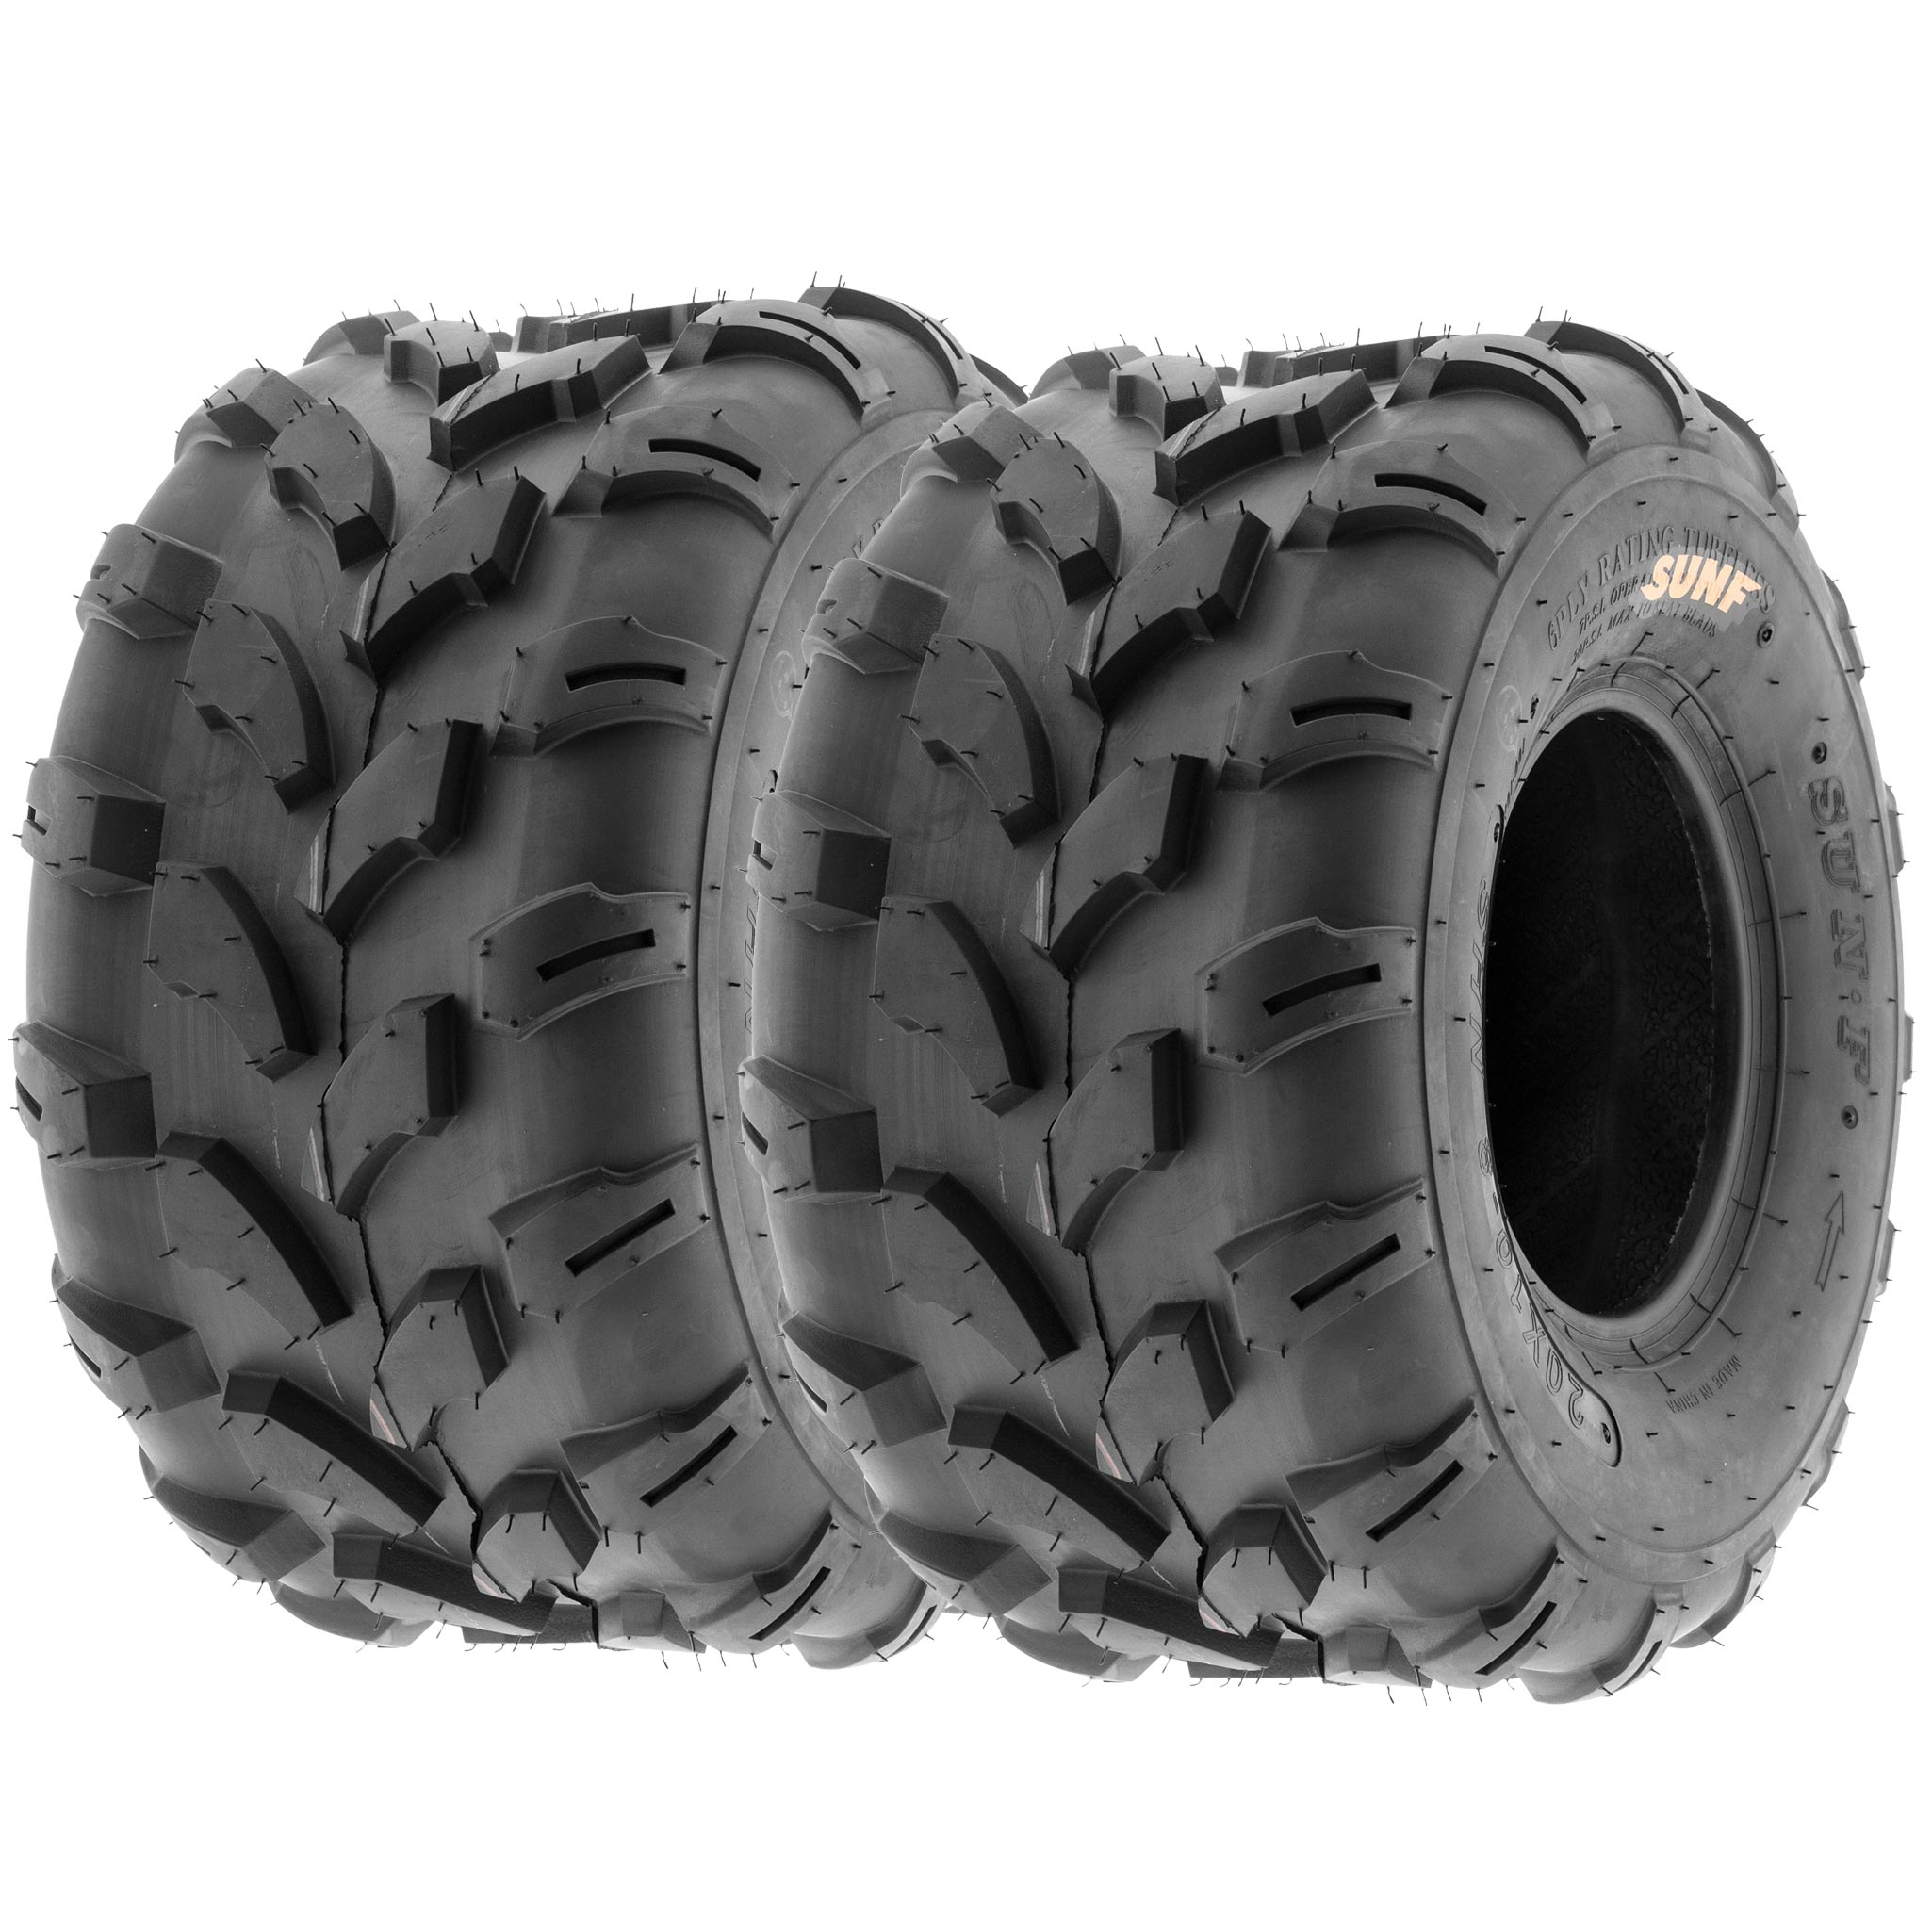 SunF 19x9.5-8 ATV UTV Tire 19x9.5x8  Knobby Replacement 6 Ply A003 Tubeless